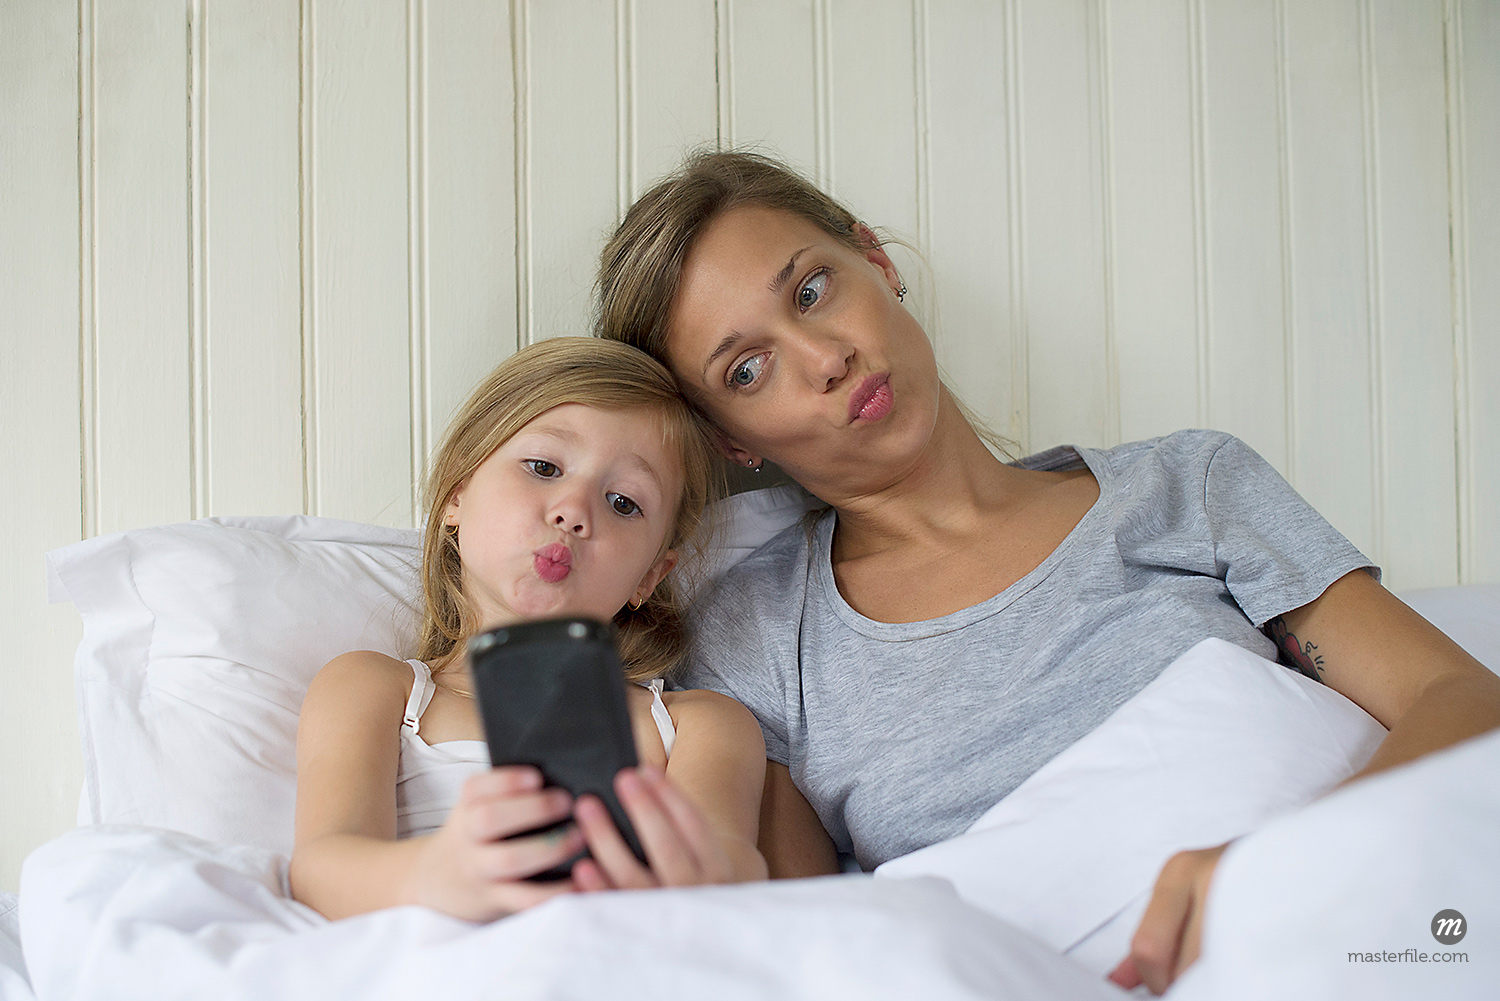 Mother and daughter posing for selfie in bed  © Masterfile